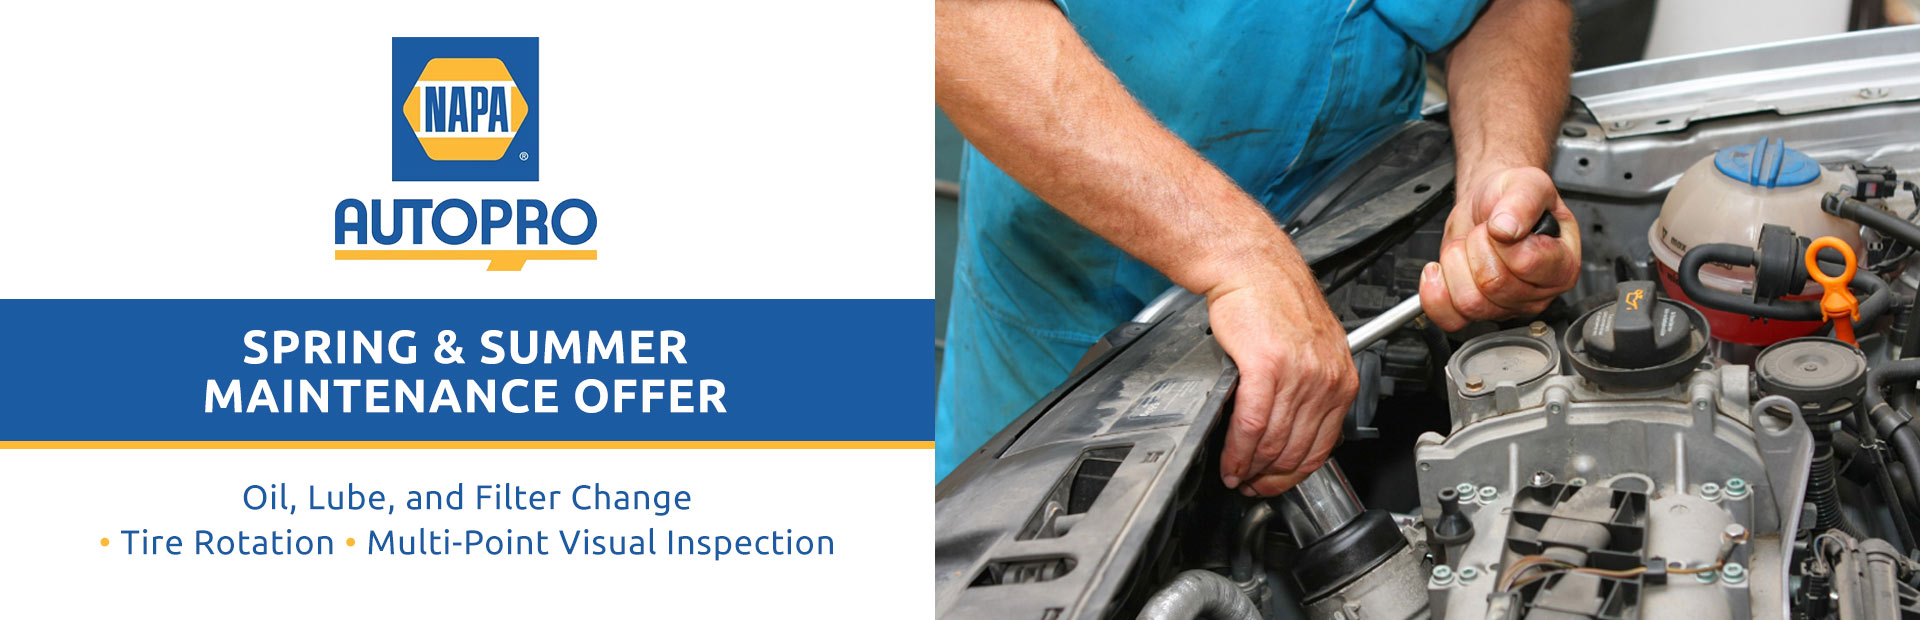 NAPA AUTOPRO Spring & Summer Maintenance Offer: Contact us for details!